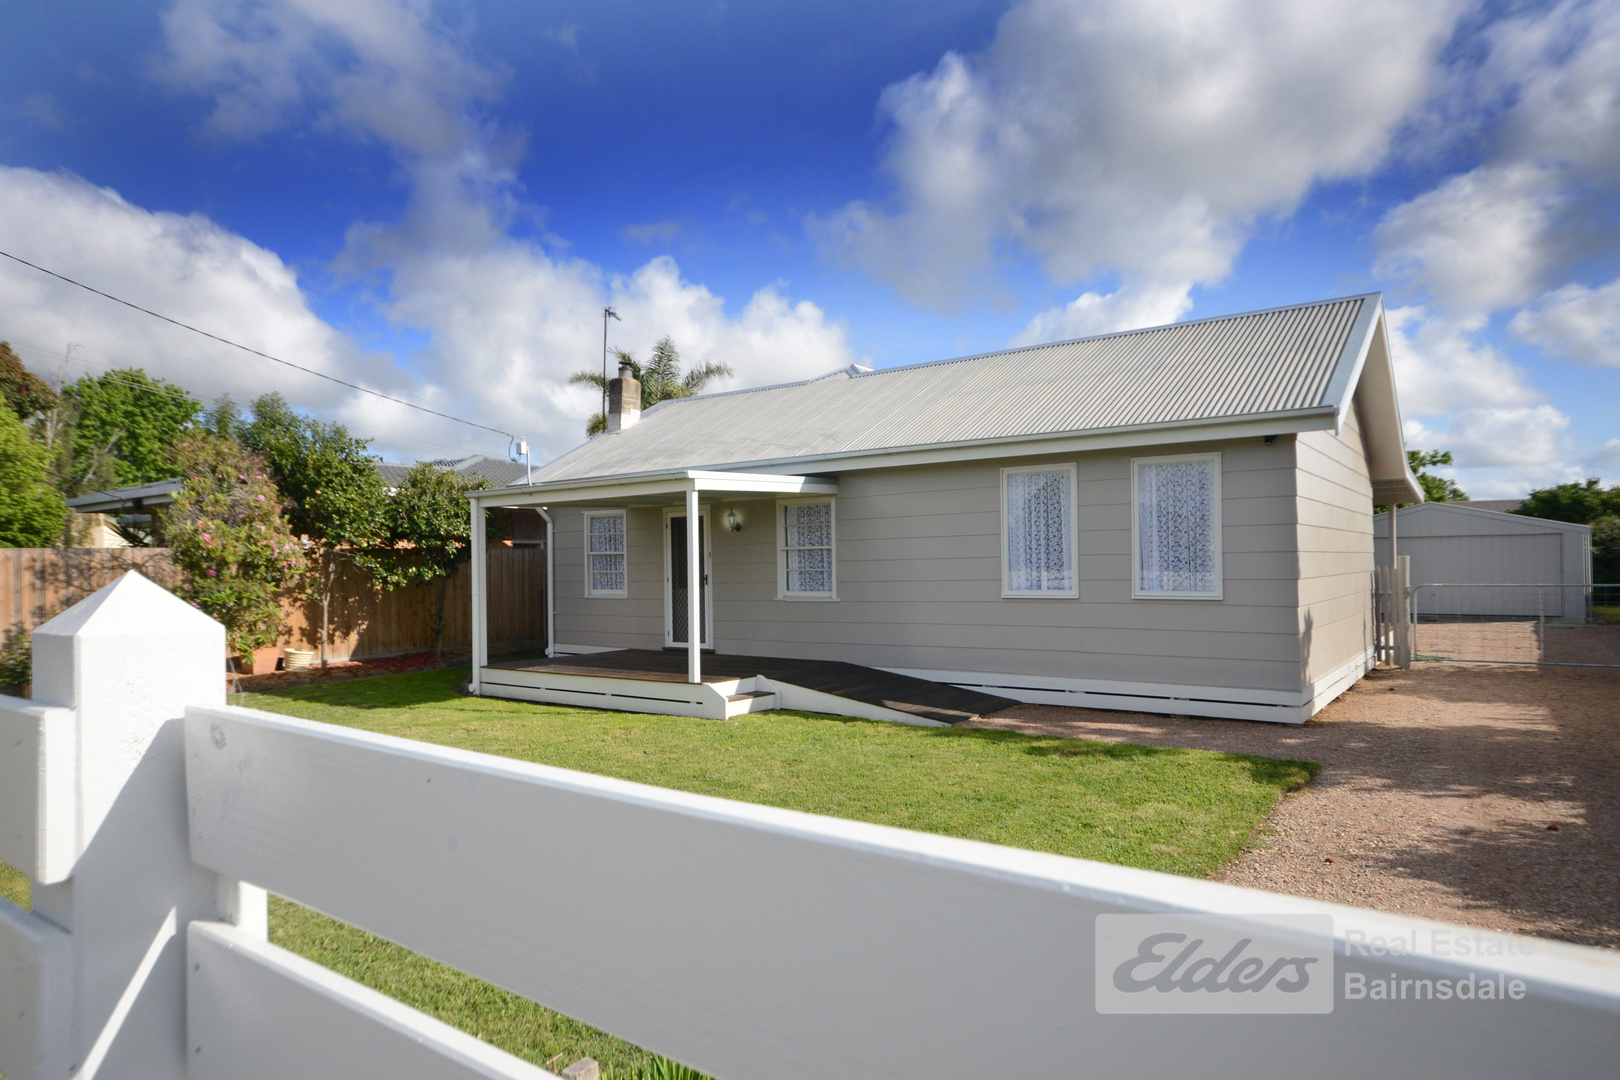 74 Moroney Street, Bairnsdale, VIC, 3875 - Image 1